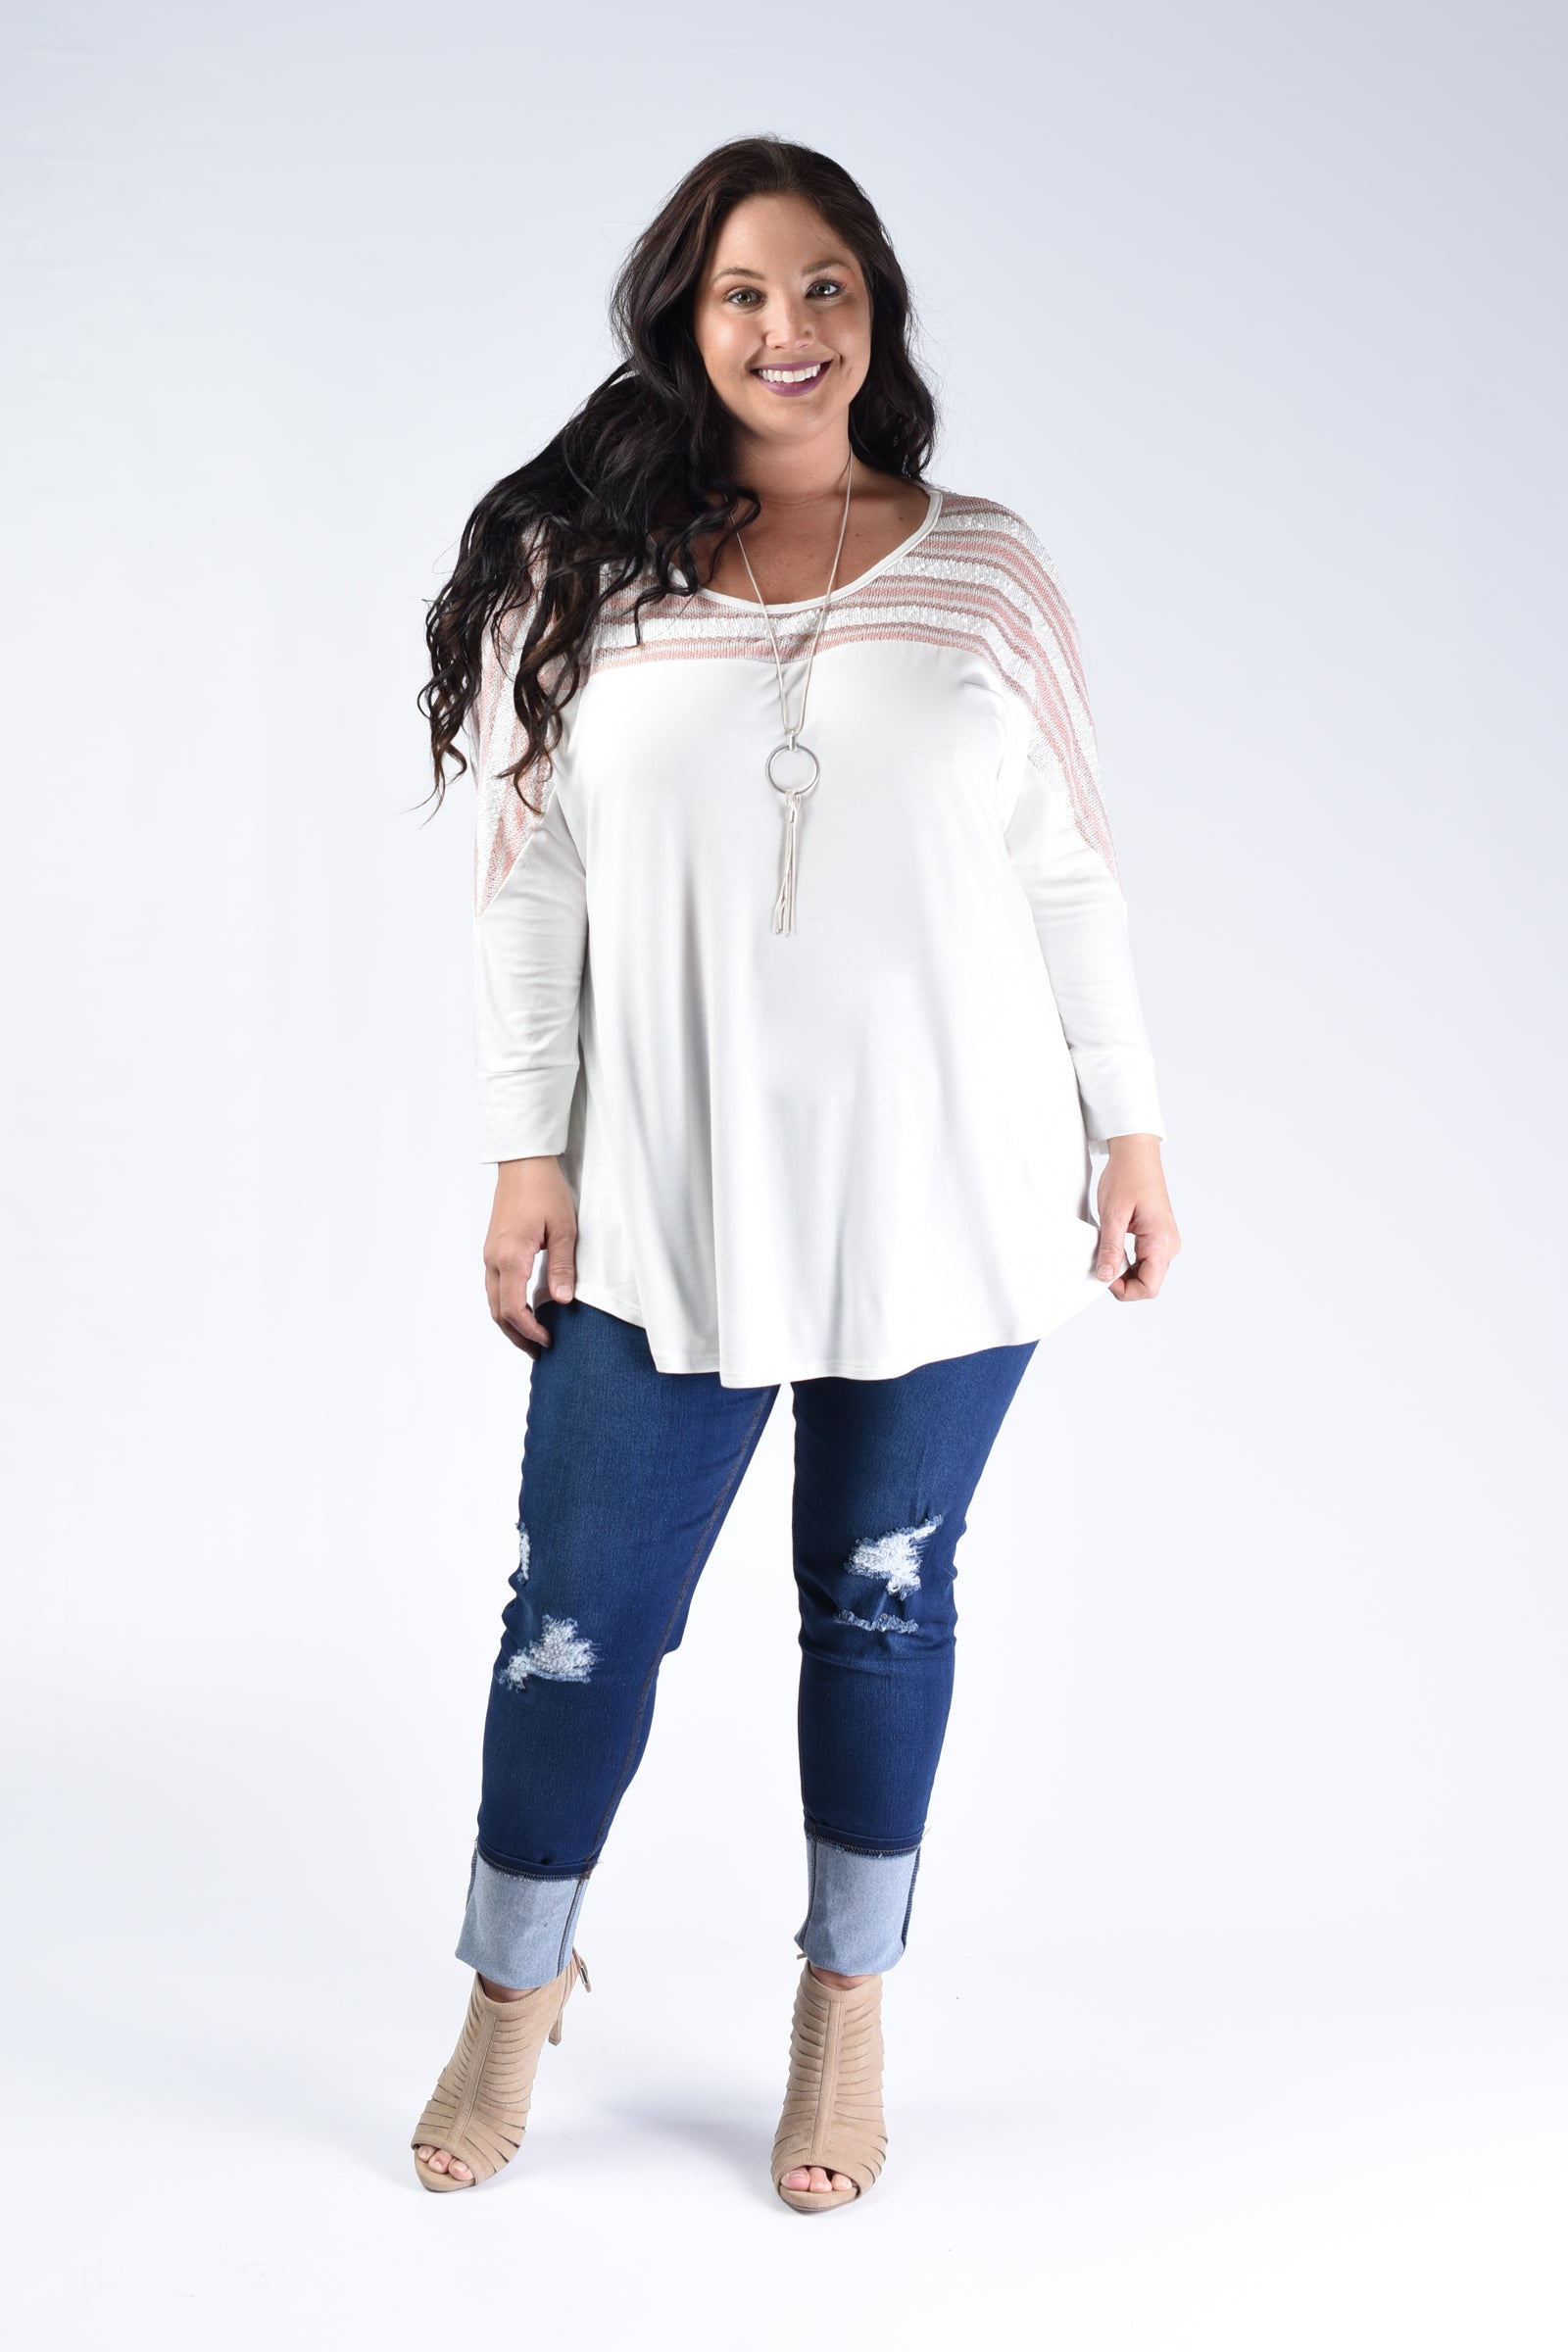 White & Blush Shoulder Top - www.mycurvystore.com - Curvy Boutique - Plus Size